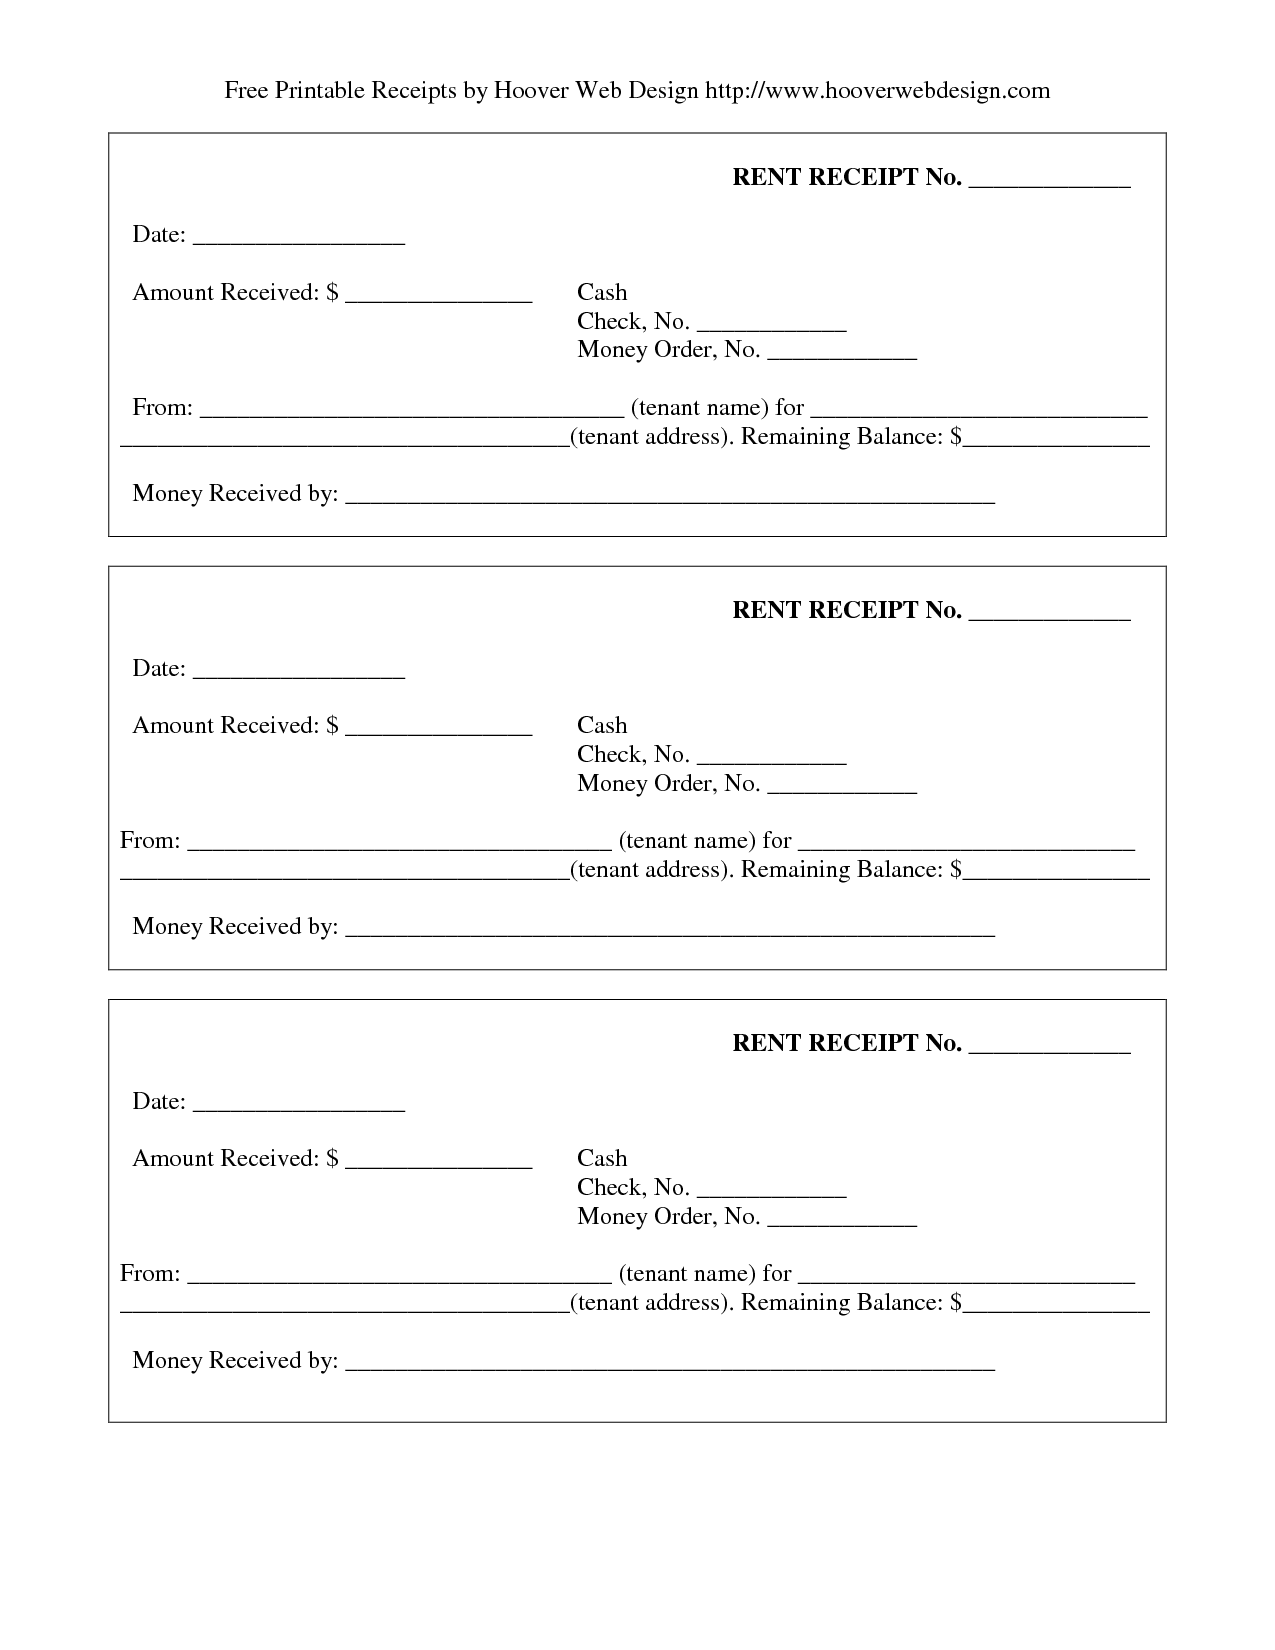 Receipt Format For Payment supply inventory template property – Money Receipt Format Word